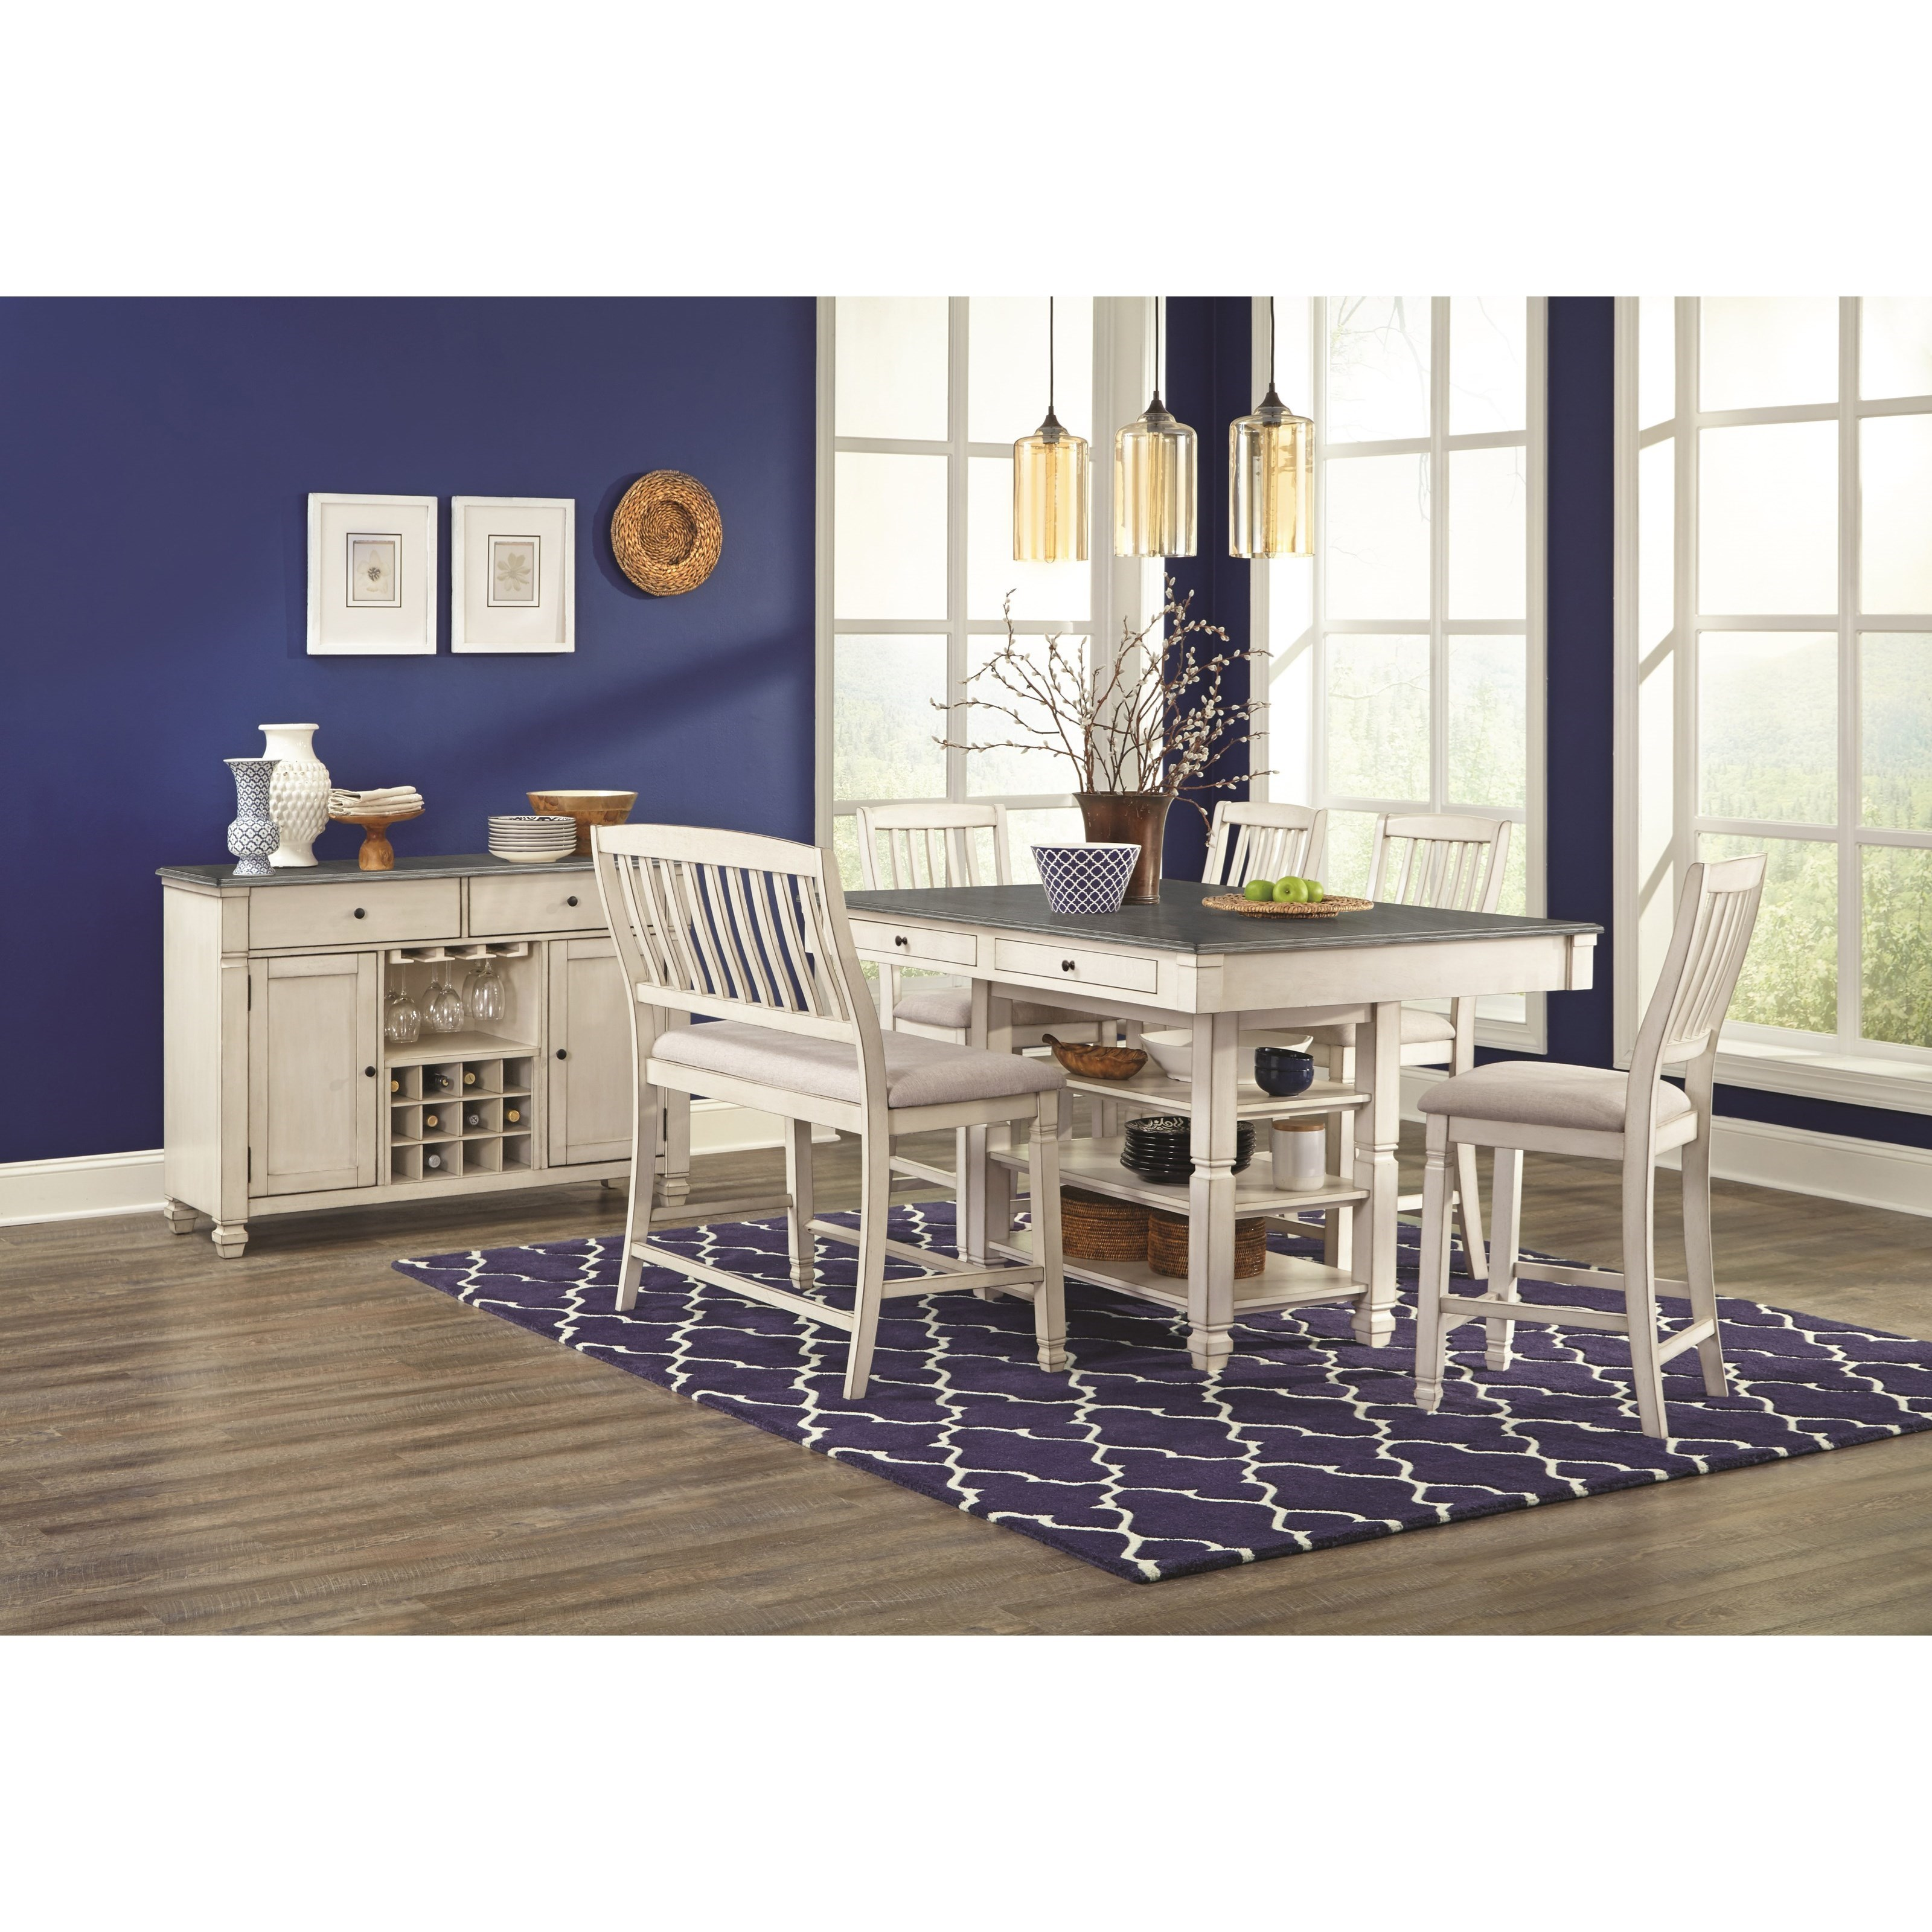 1735P Dining Room Group by Lifestyle at Sam Levitz Outlet